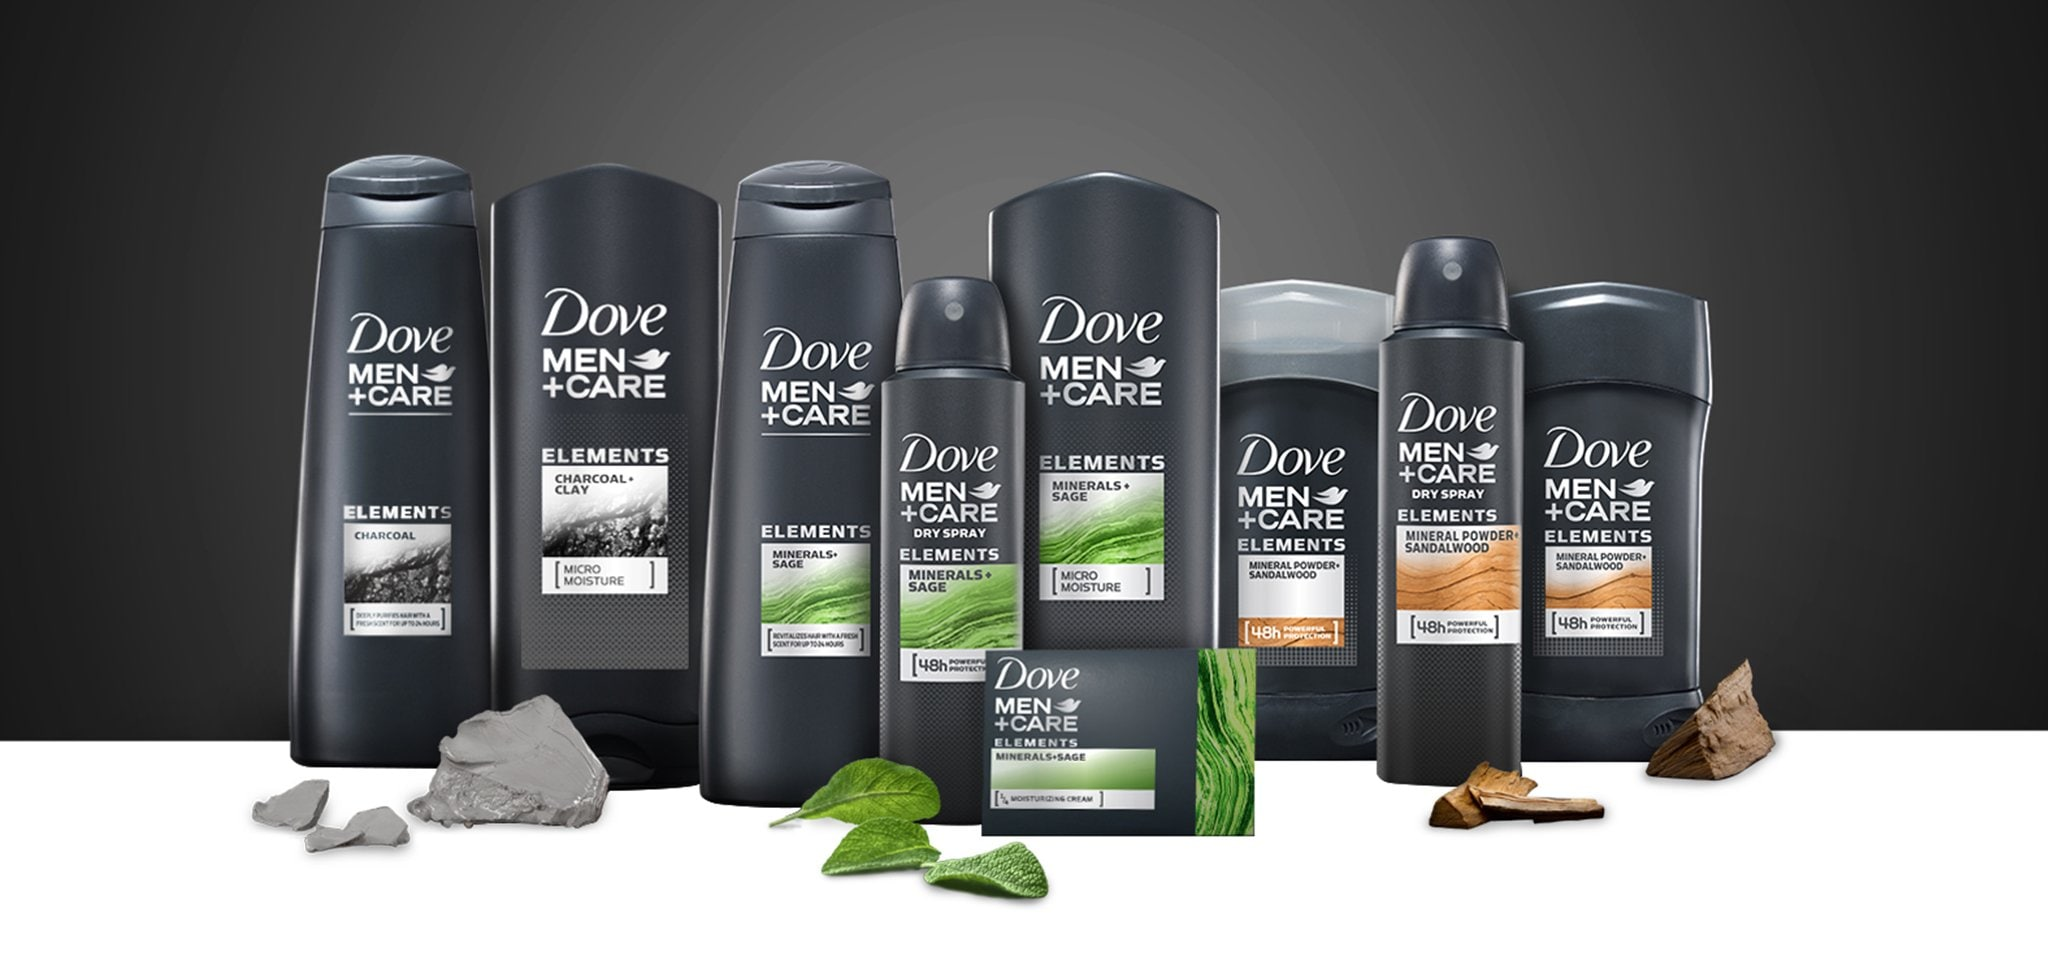 Dove Elements Collection: Soap, Body Wash, Shampoo, and Deodorant